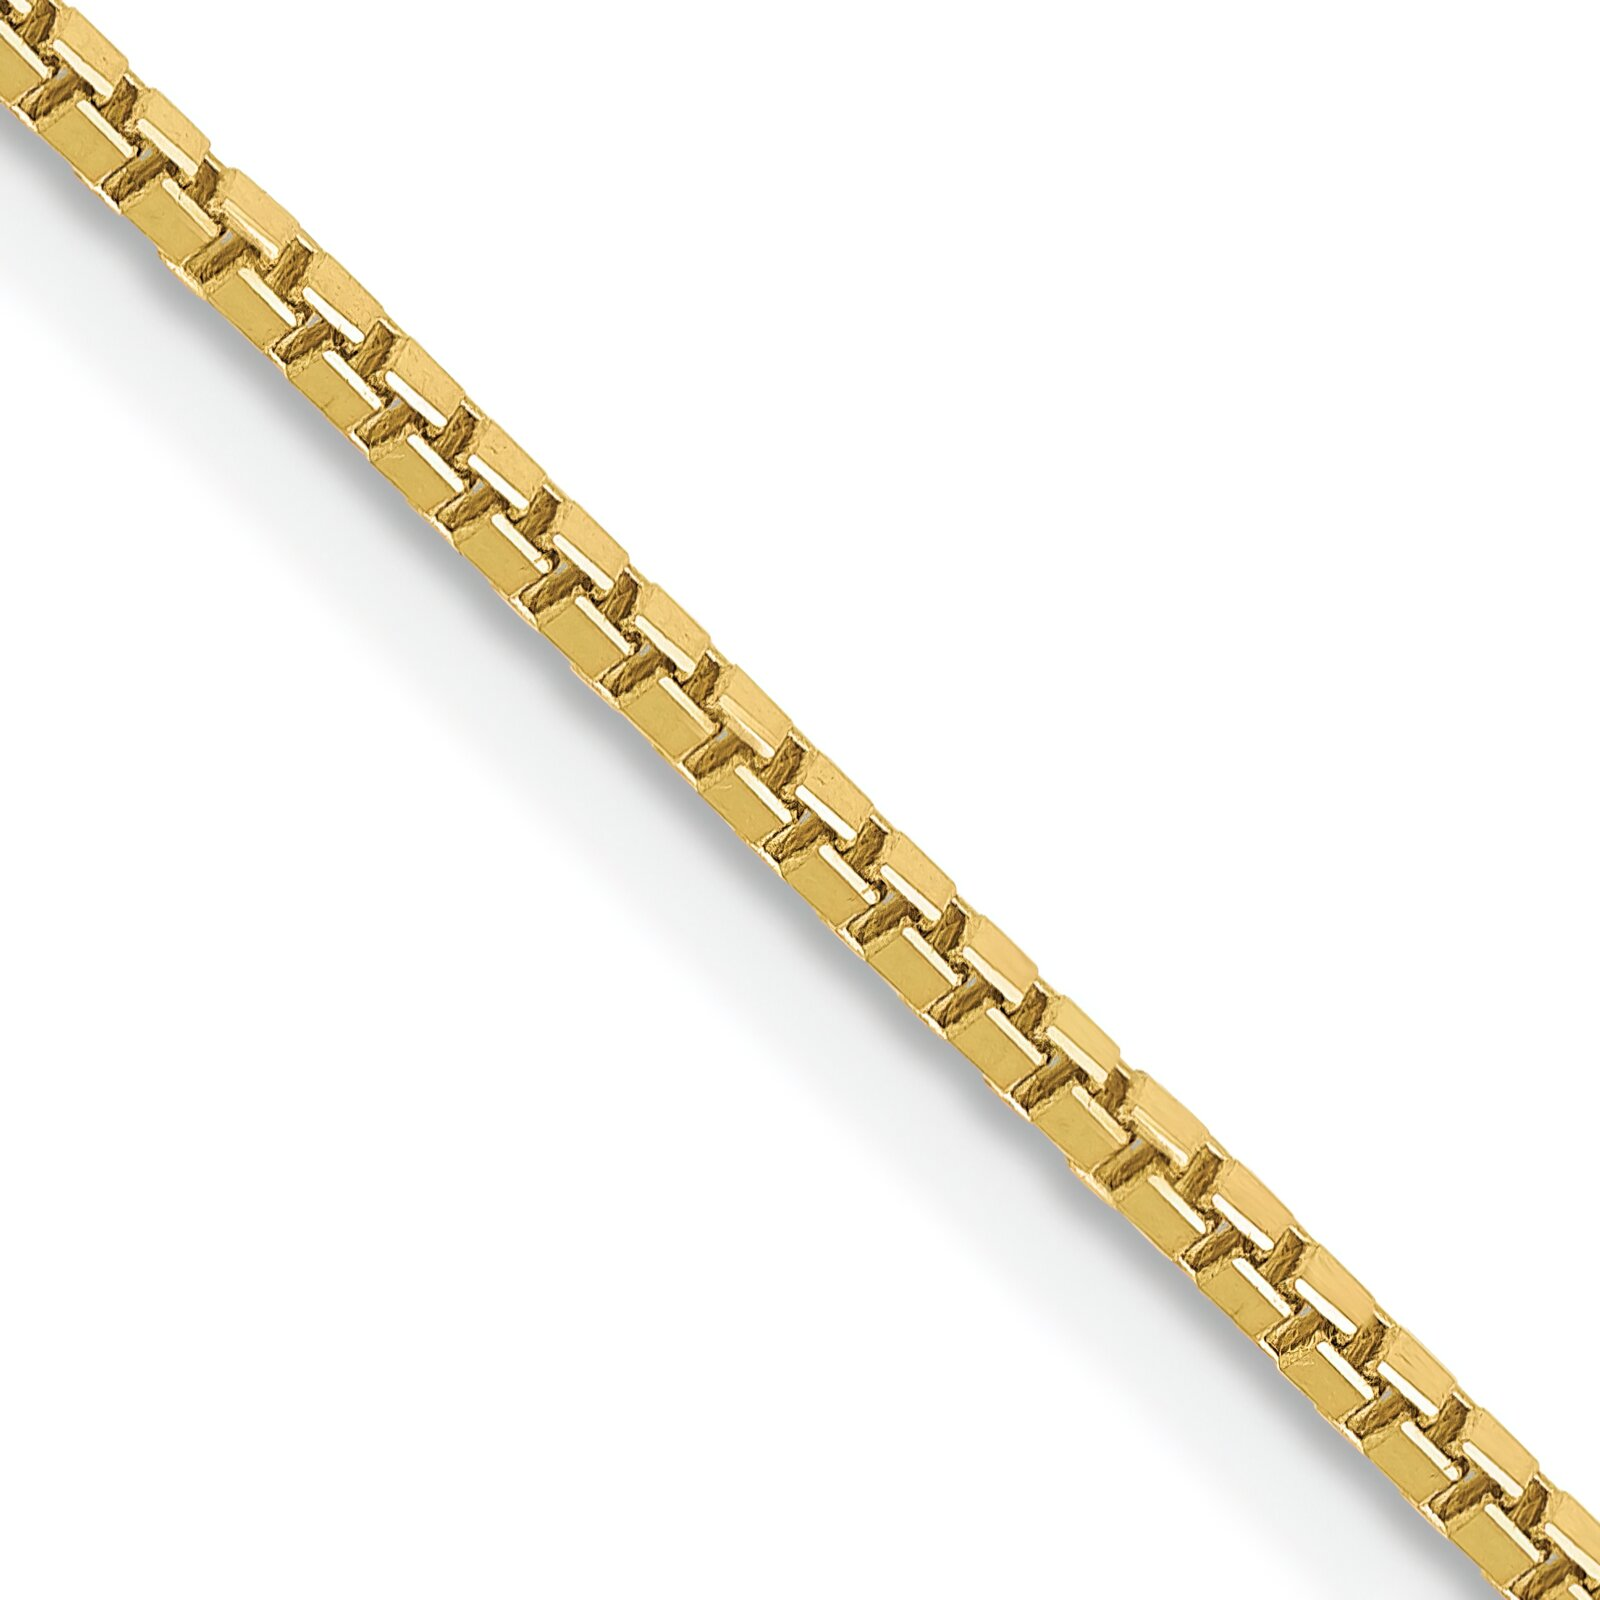 "Findingking 10K Yellow Gold 1.3mm Box Chain Necklace Jewelry 16"" at Sears.com"